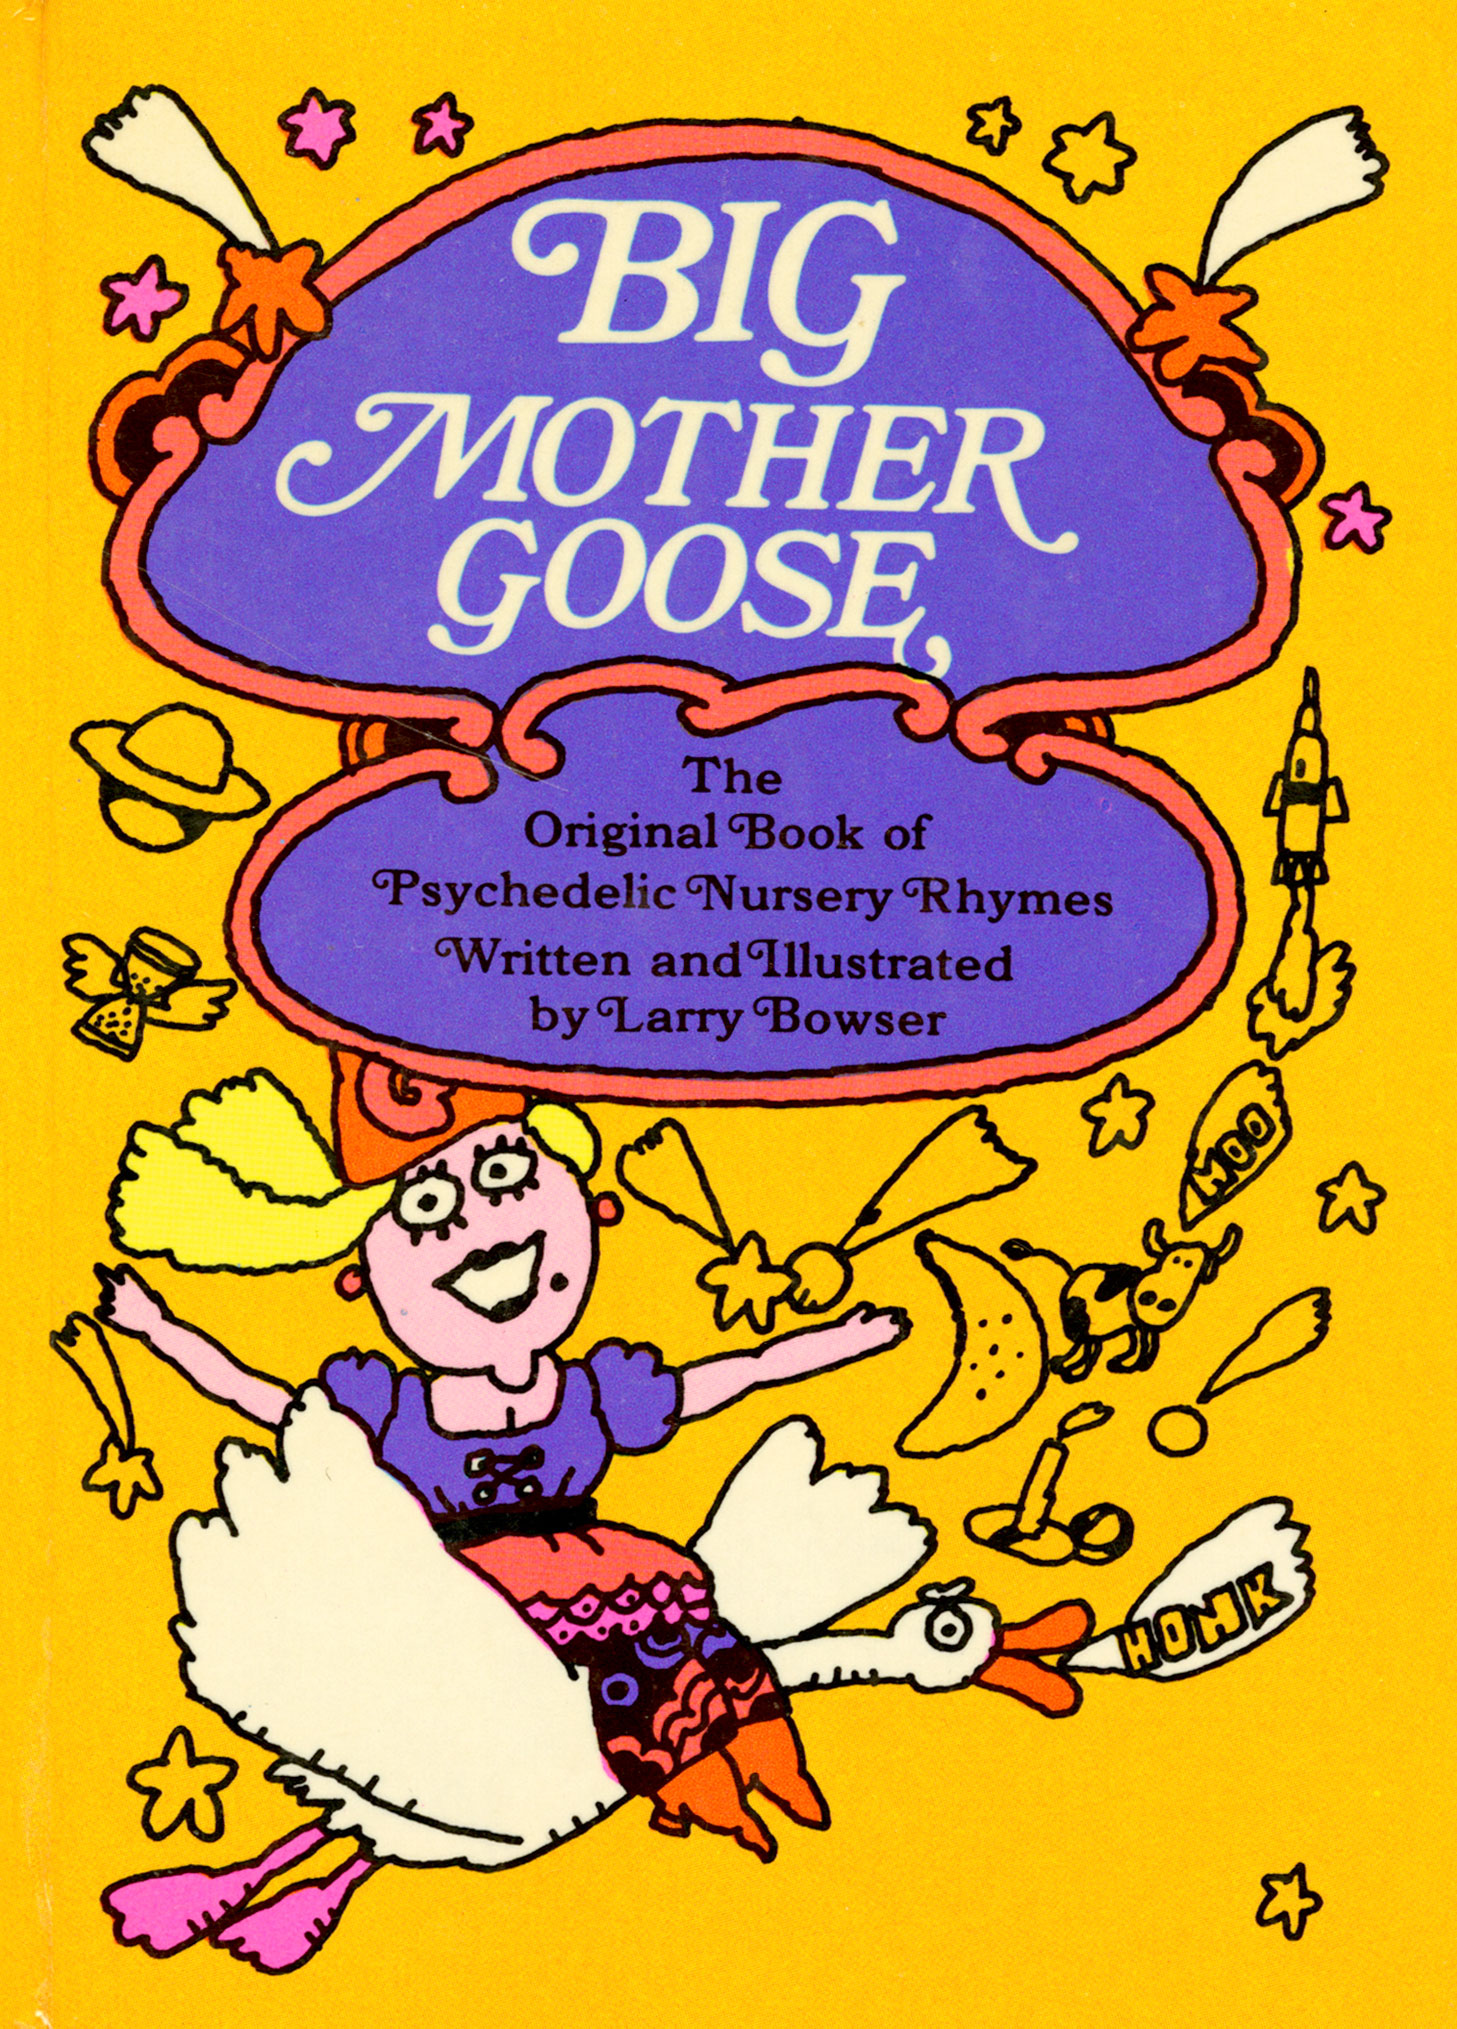 BIG MOTHER GOOSE